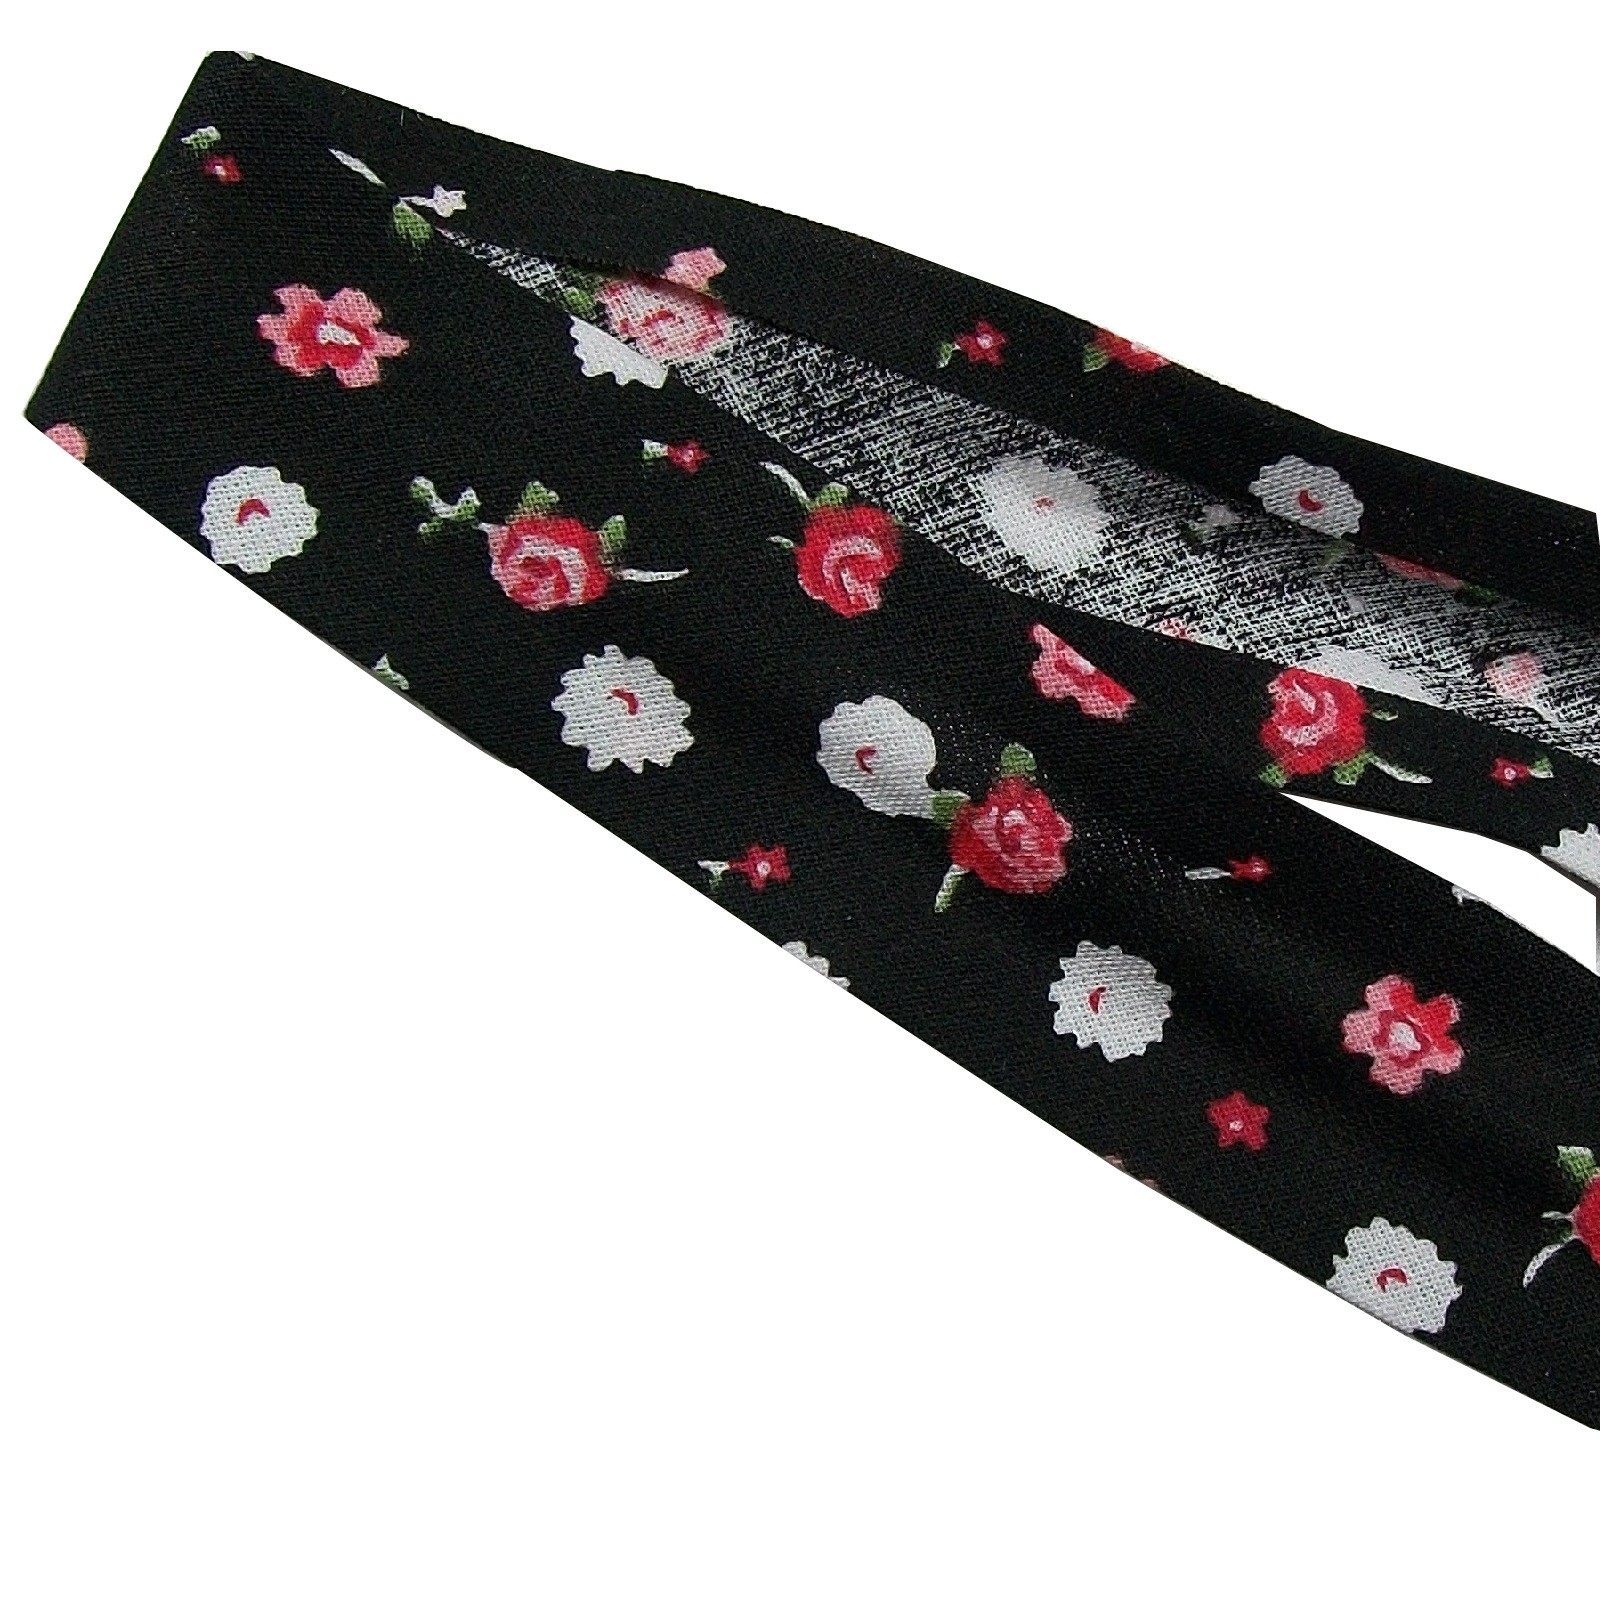 Bias Binding Patterned Cotton 25mm wide Black with Flowers 1 metre length